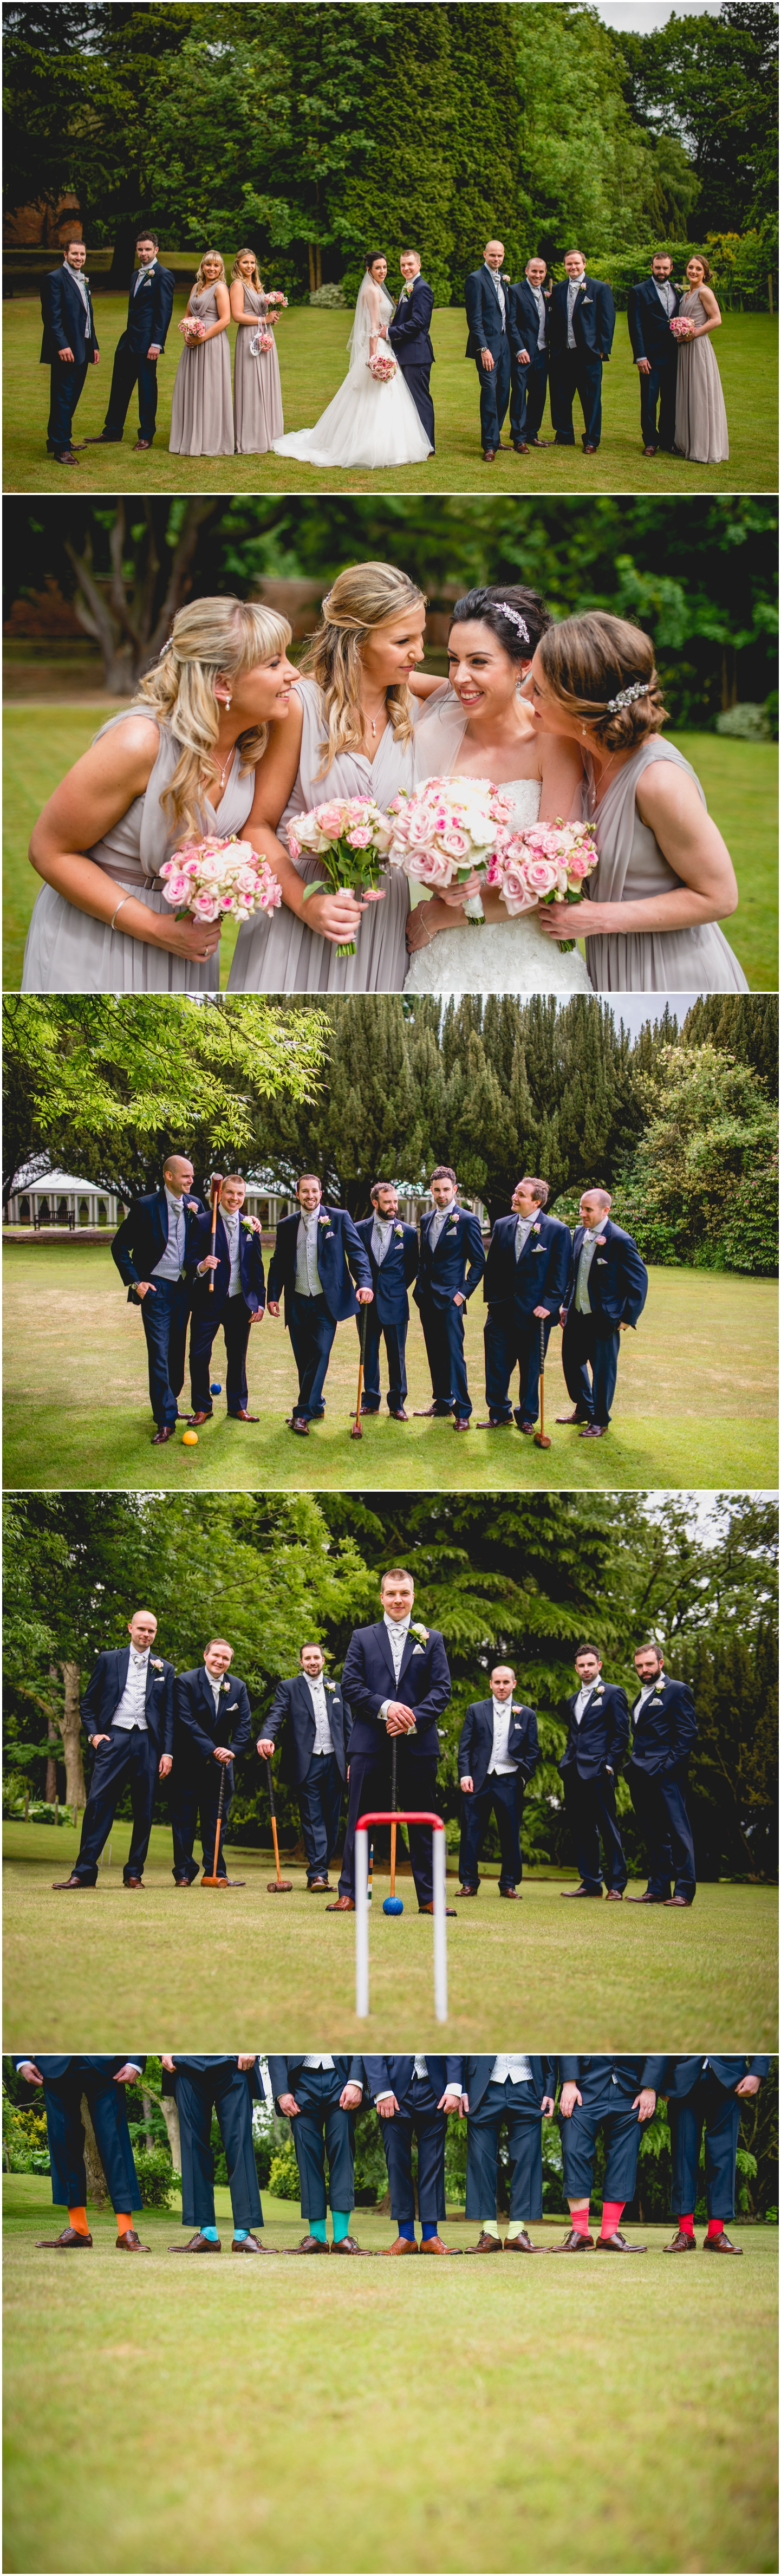 Jodie and Matt's Newhall Hotel Wedding in Sutton Coldfield by Lisa Carpenter Photography, Birmingham, West Midlands wedding photographer